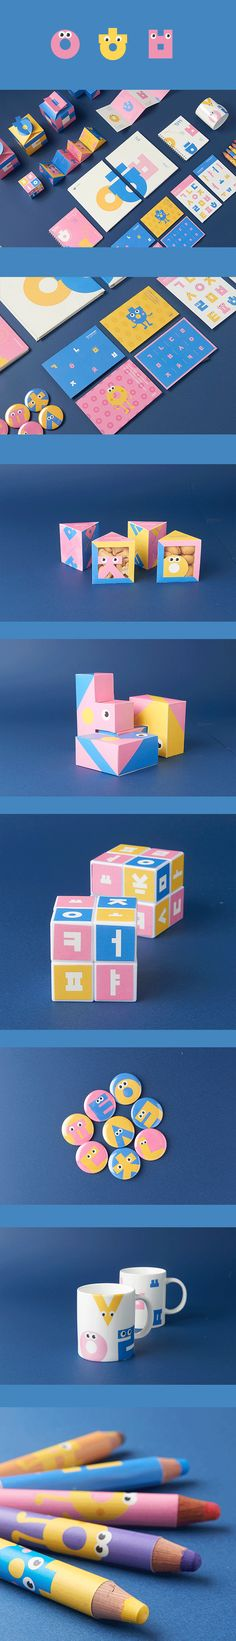 Kid Hangeul Museum on Behance